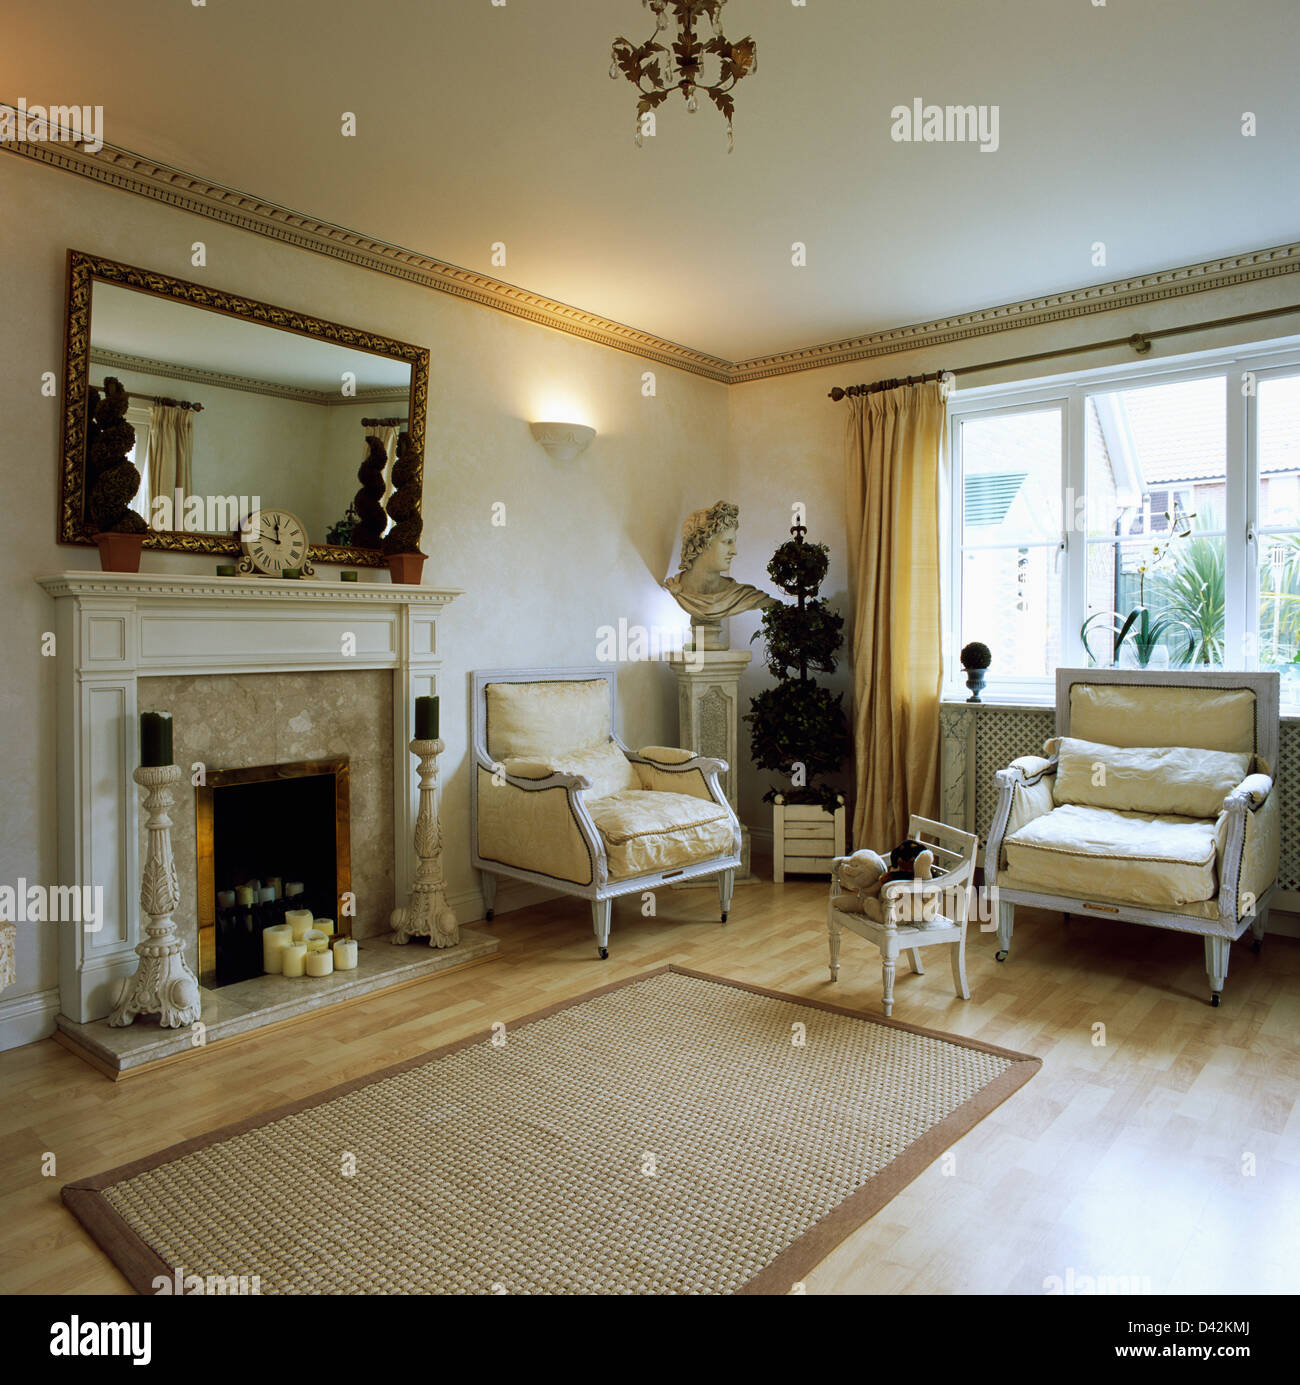 Mirror above fireplace with artificial topiary tree in living room